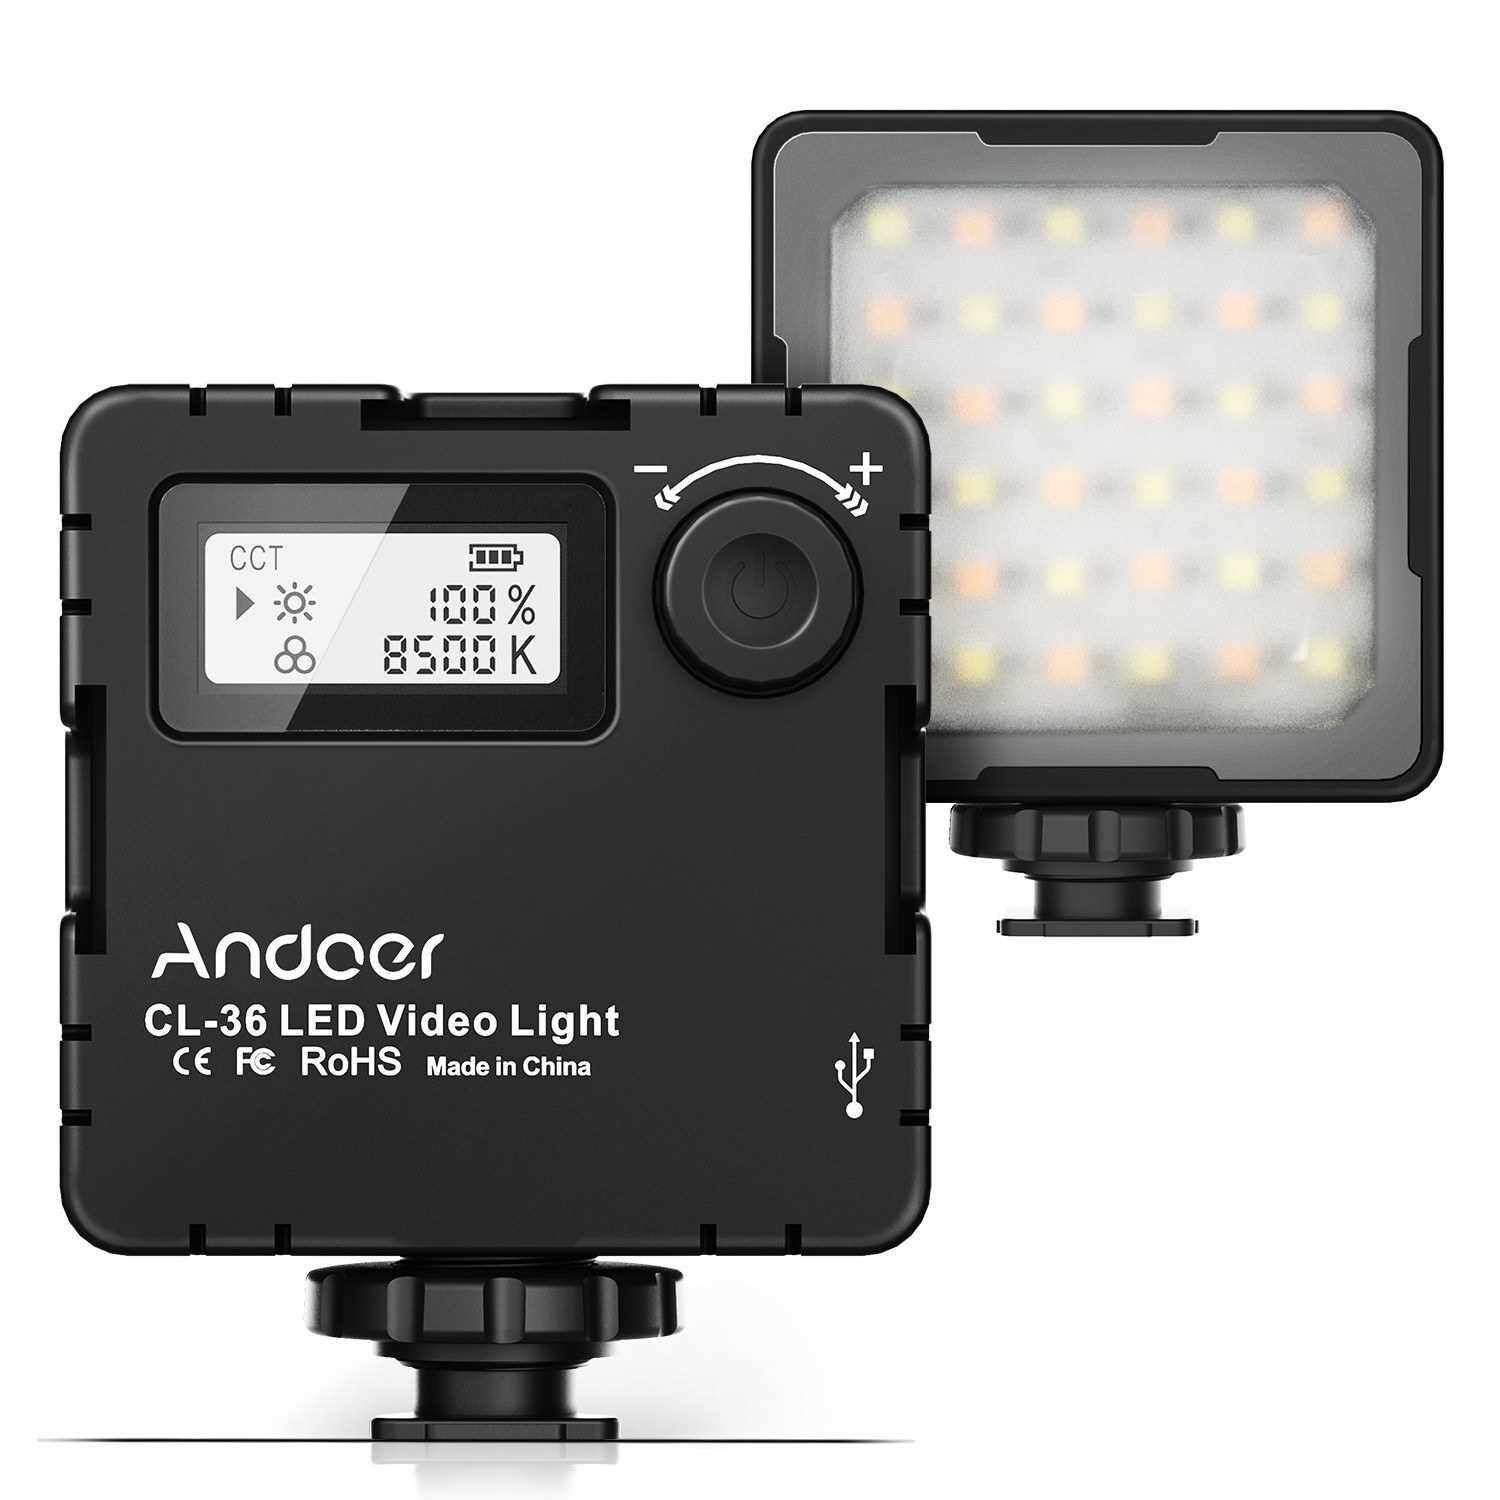 Andoer CL-36 Mini Bi-color LED Video Light 2800K-8500K Dimmable Built-in Rechargeable Battery with 3 Cold Shoe Mounts LCD Display Vlog Fill Light for DSLR Camera (Standard)